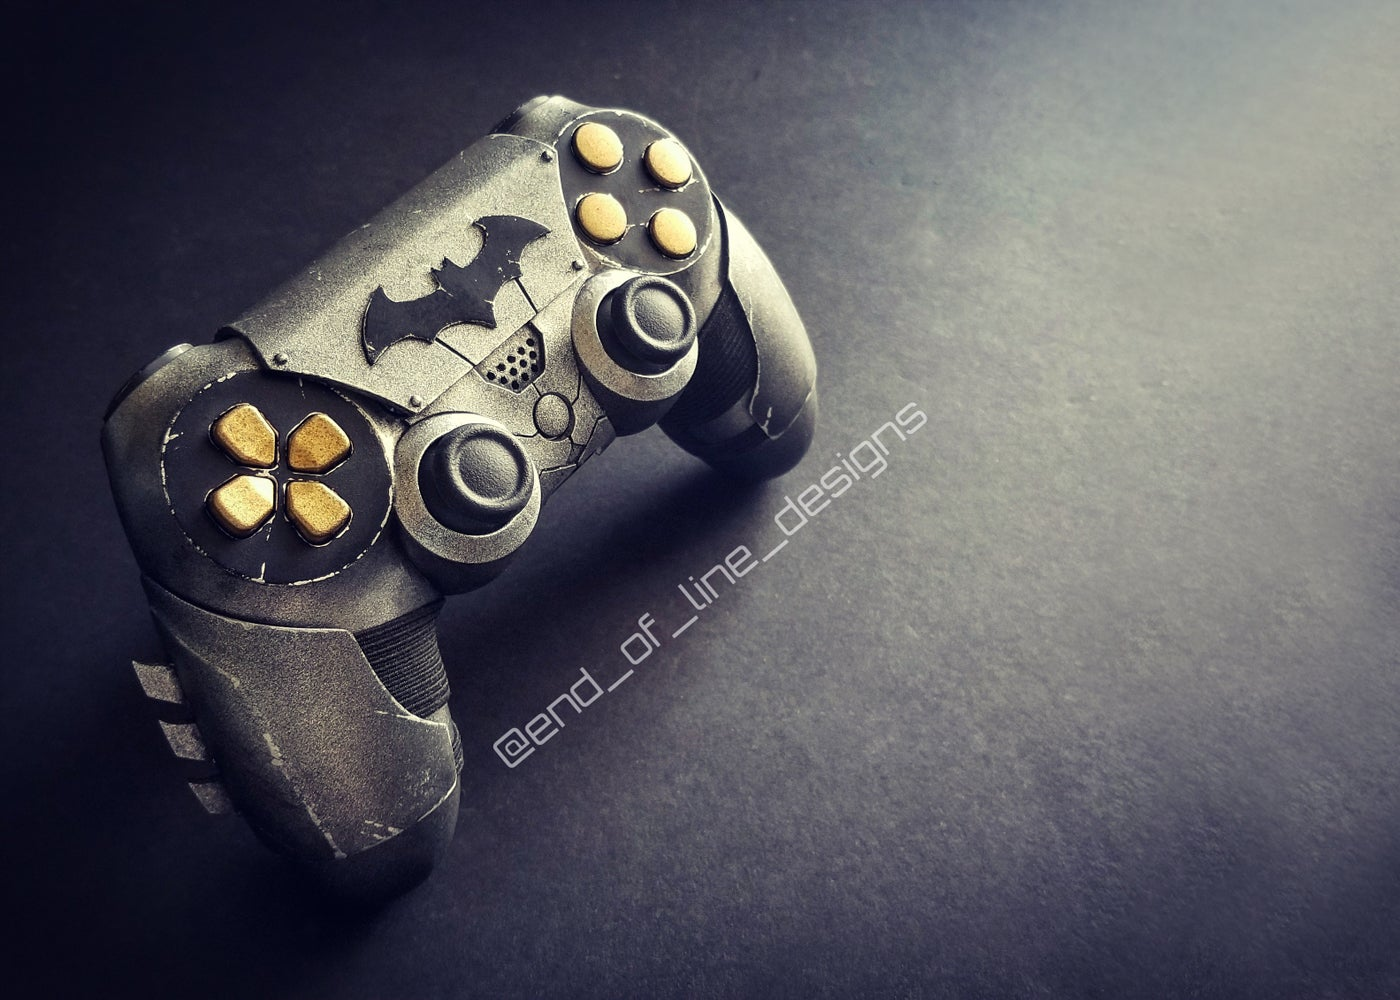 Batman PS4 Controller Knows Where The Trigger Is